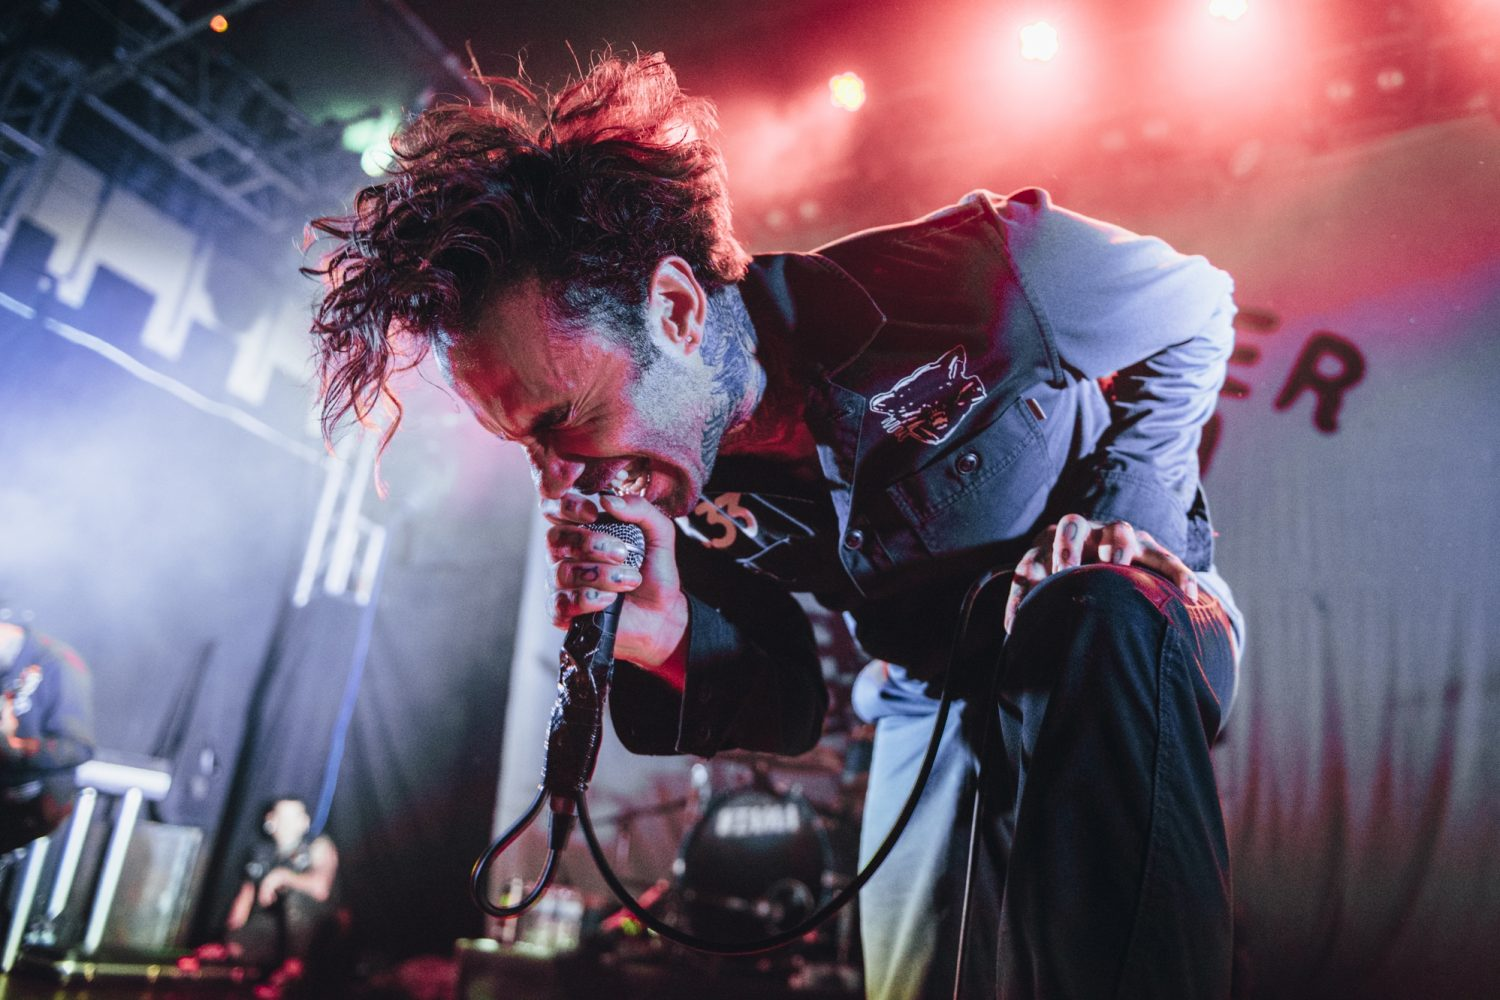 Fever 333 have released their debut album, give 'Strength In Numb333rs' a listen now